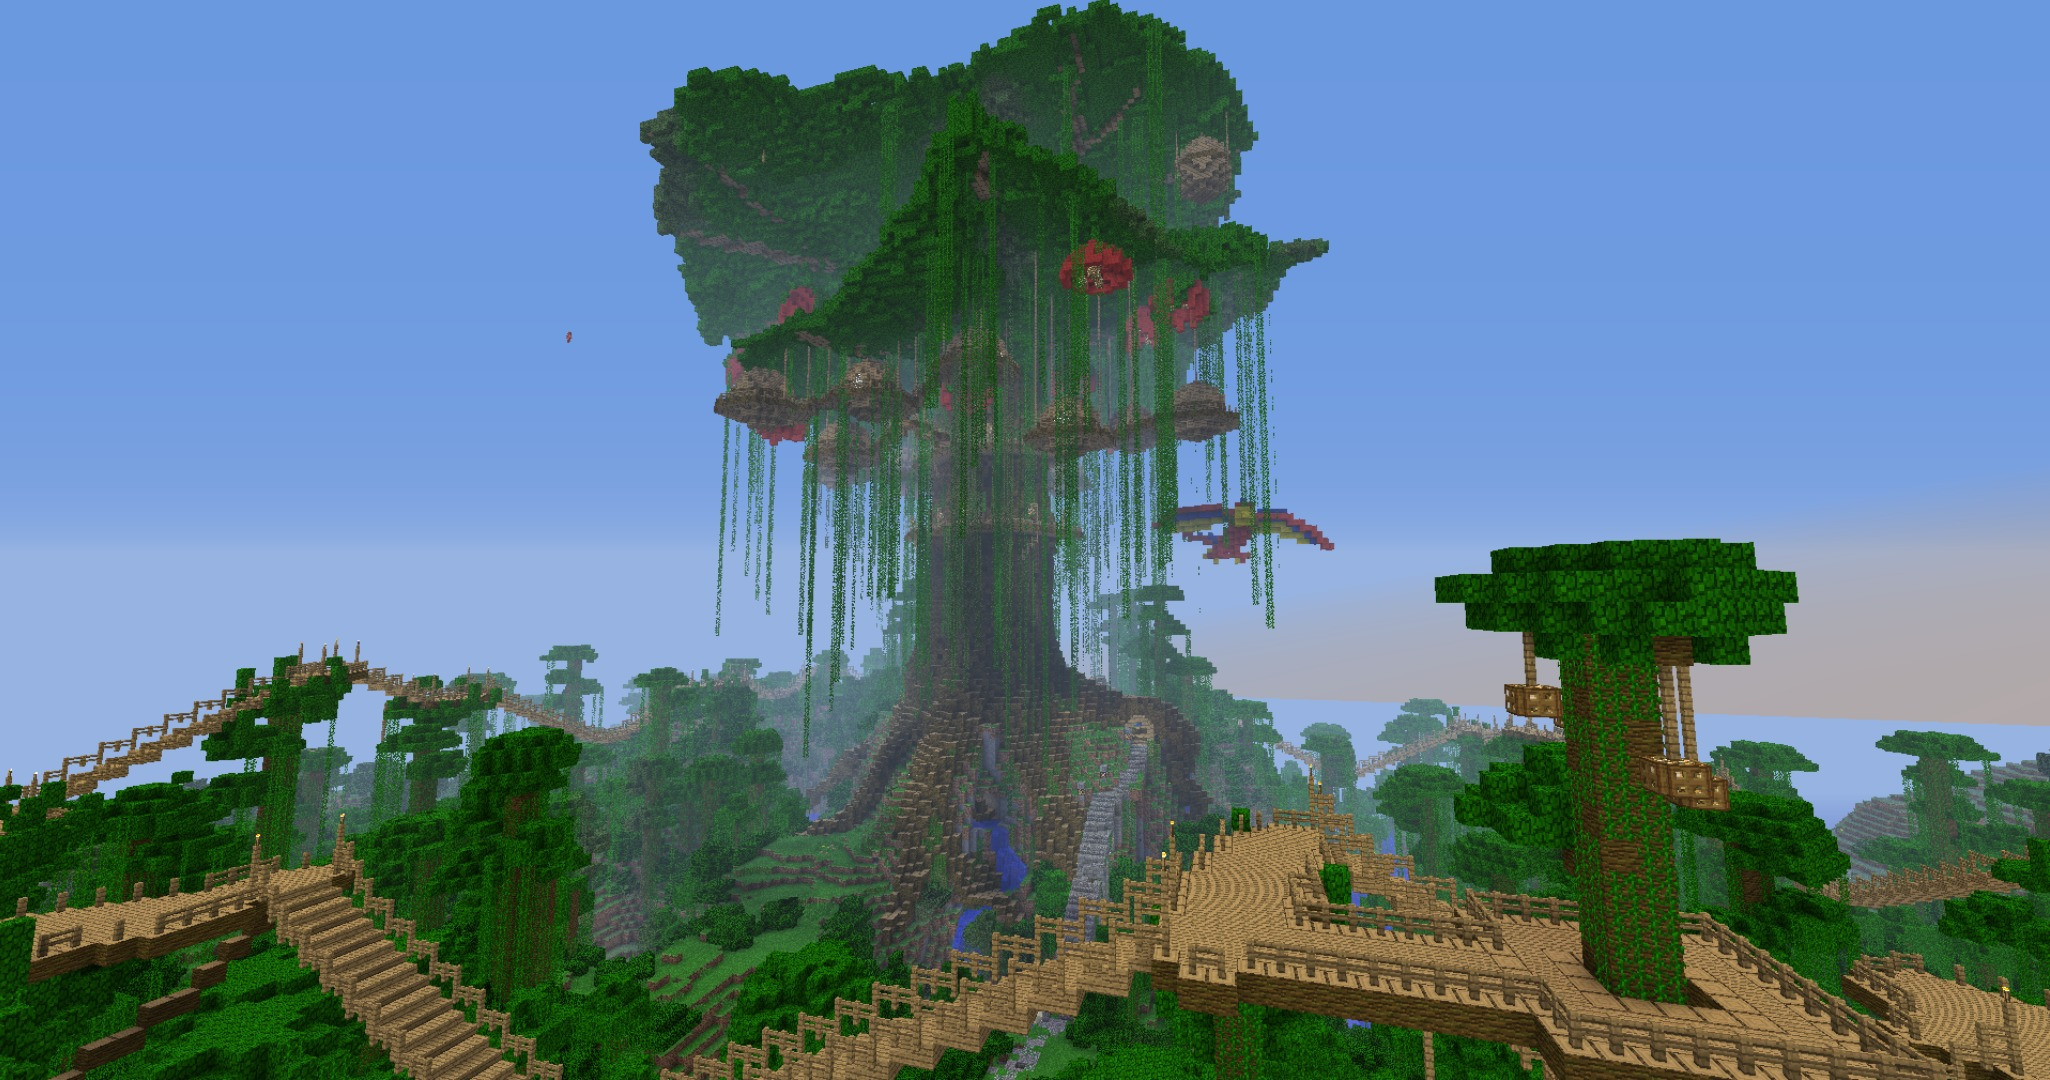 Download Wallpaper Forest The Sky Bridge House Tree Jungle Jungle Minecraft Treehouse Section Games In Resolution 2050x1080